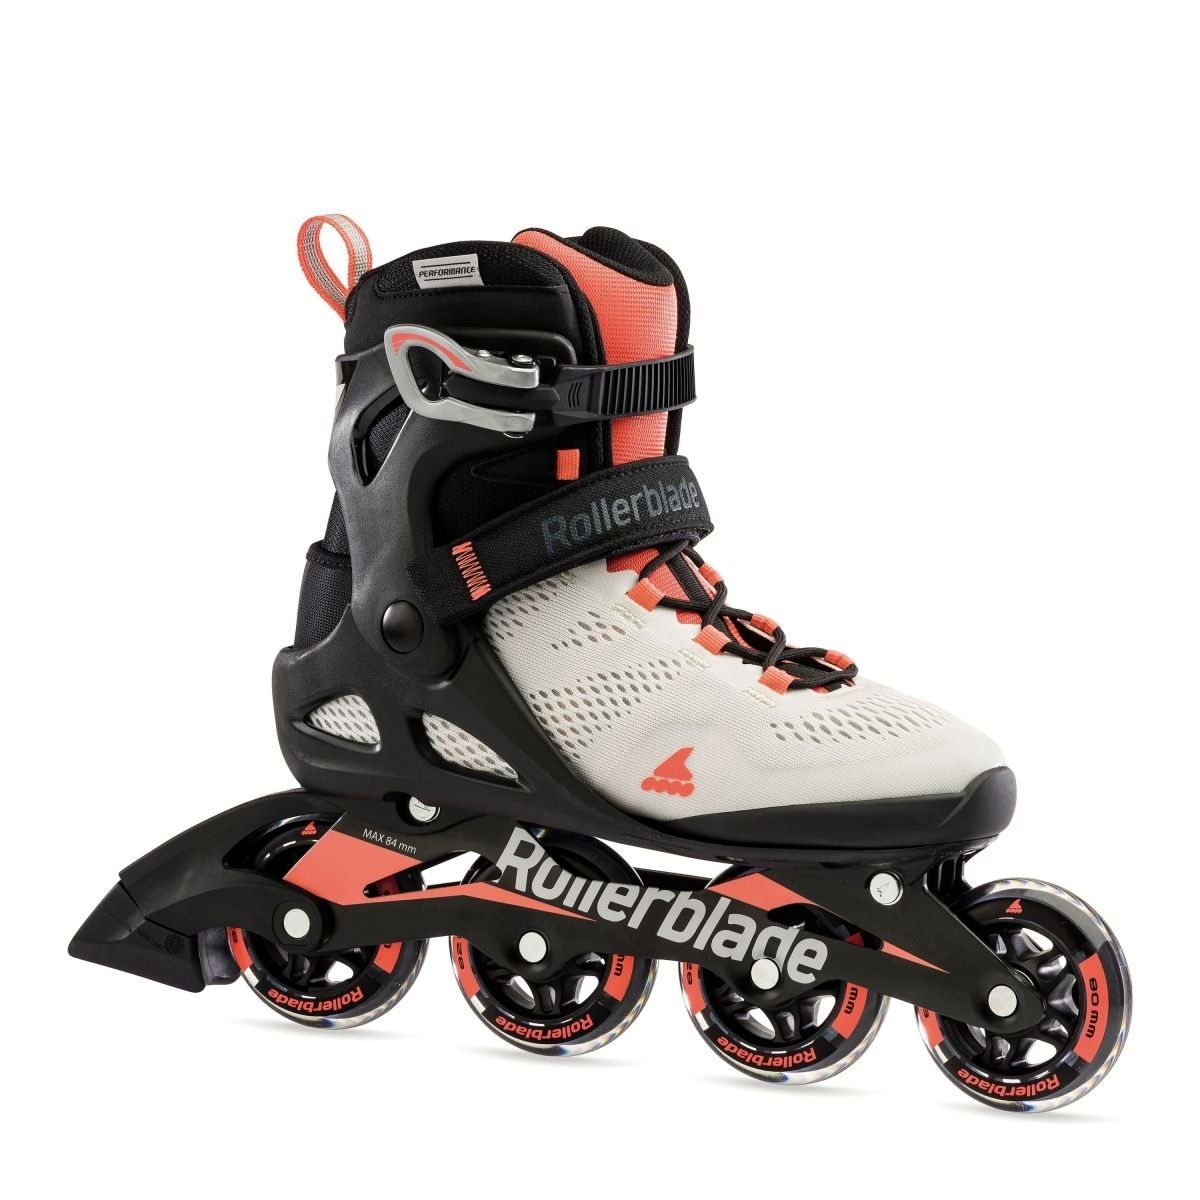 Rollerblade Macroblade 80 W 40